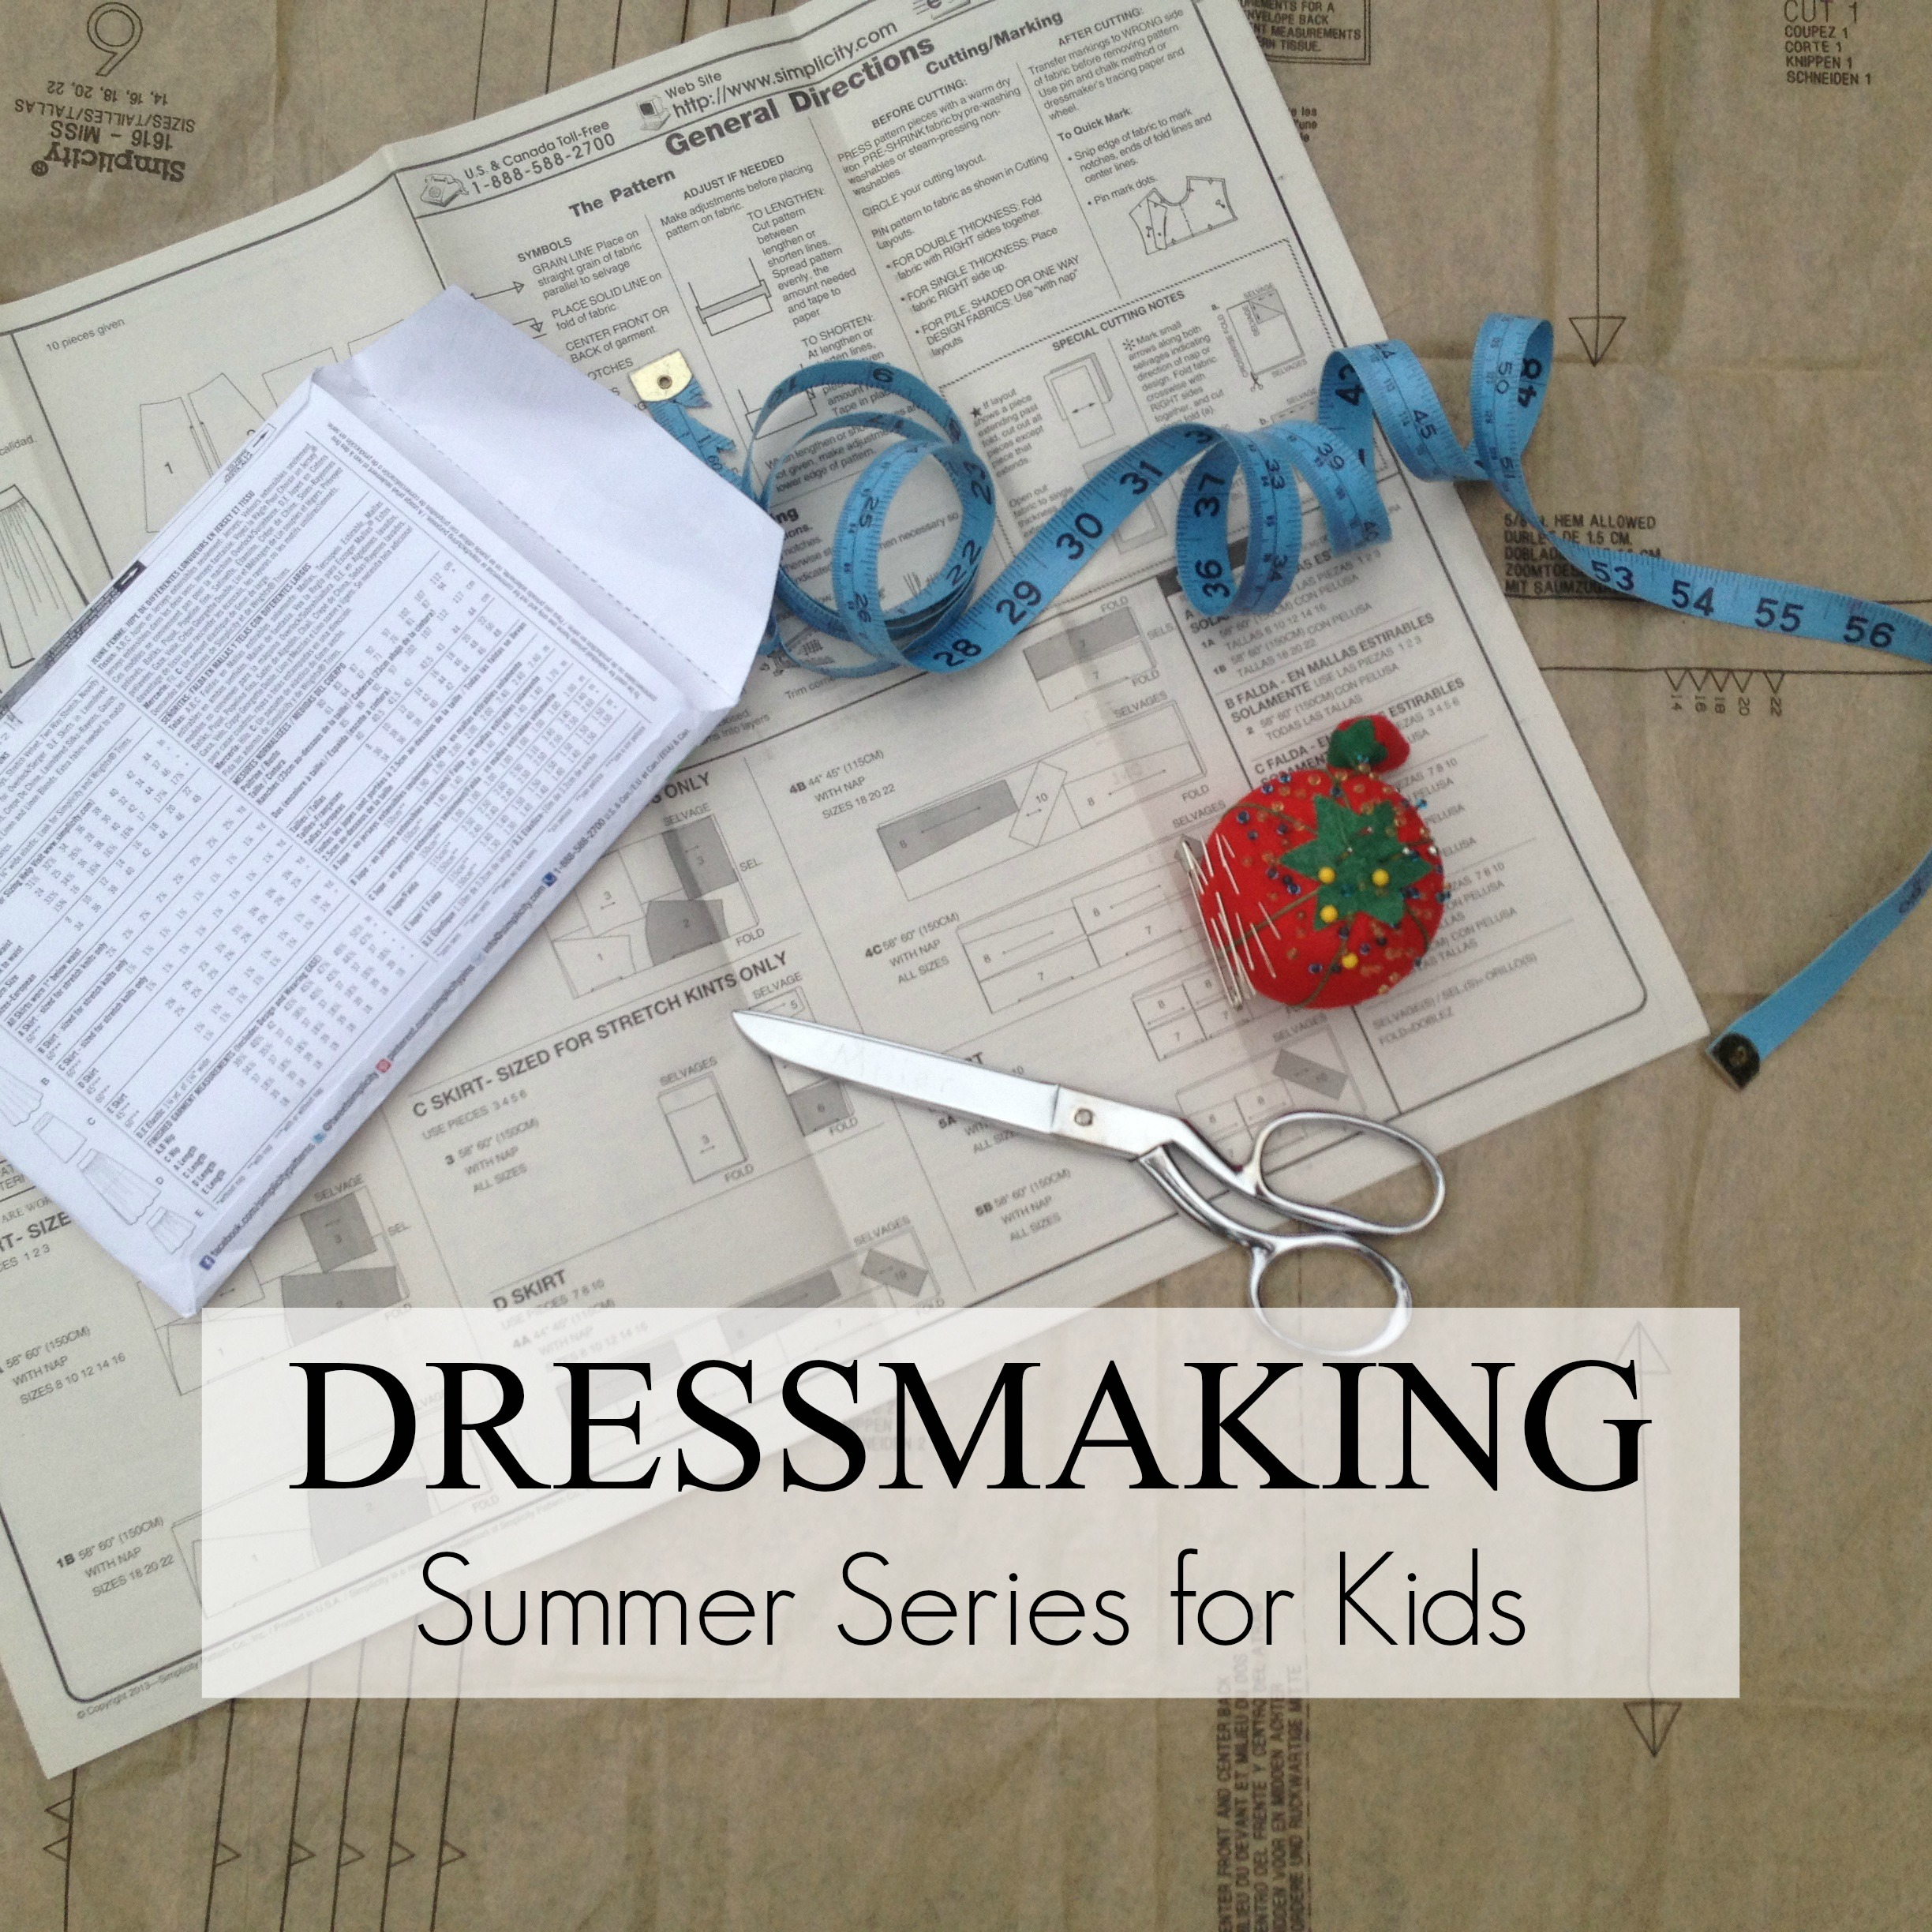 Sew You Studio | Dressmaking - Summer Series for Kids